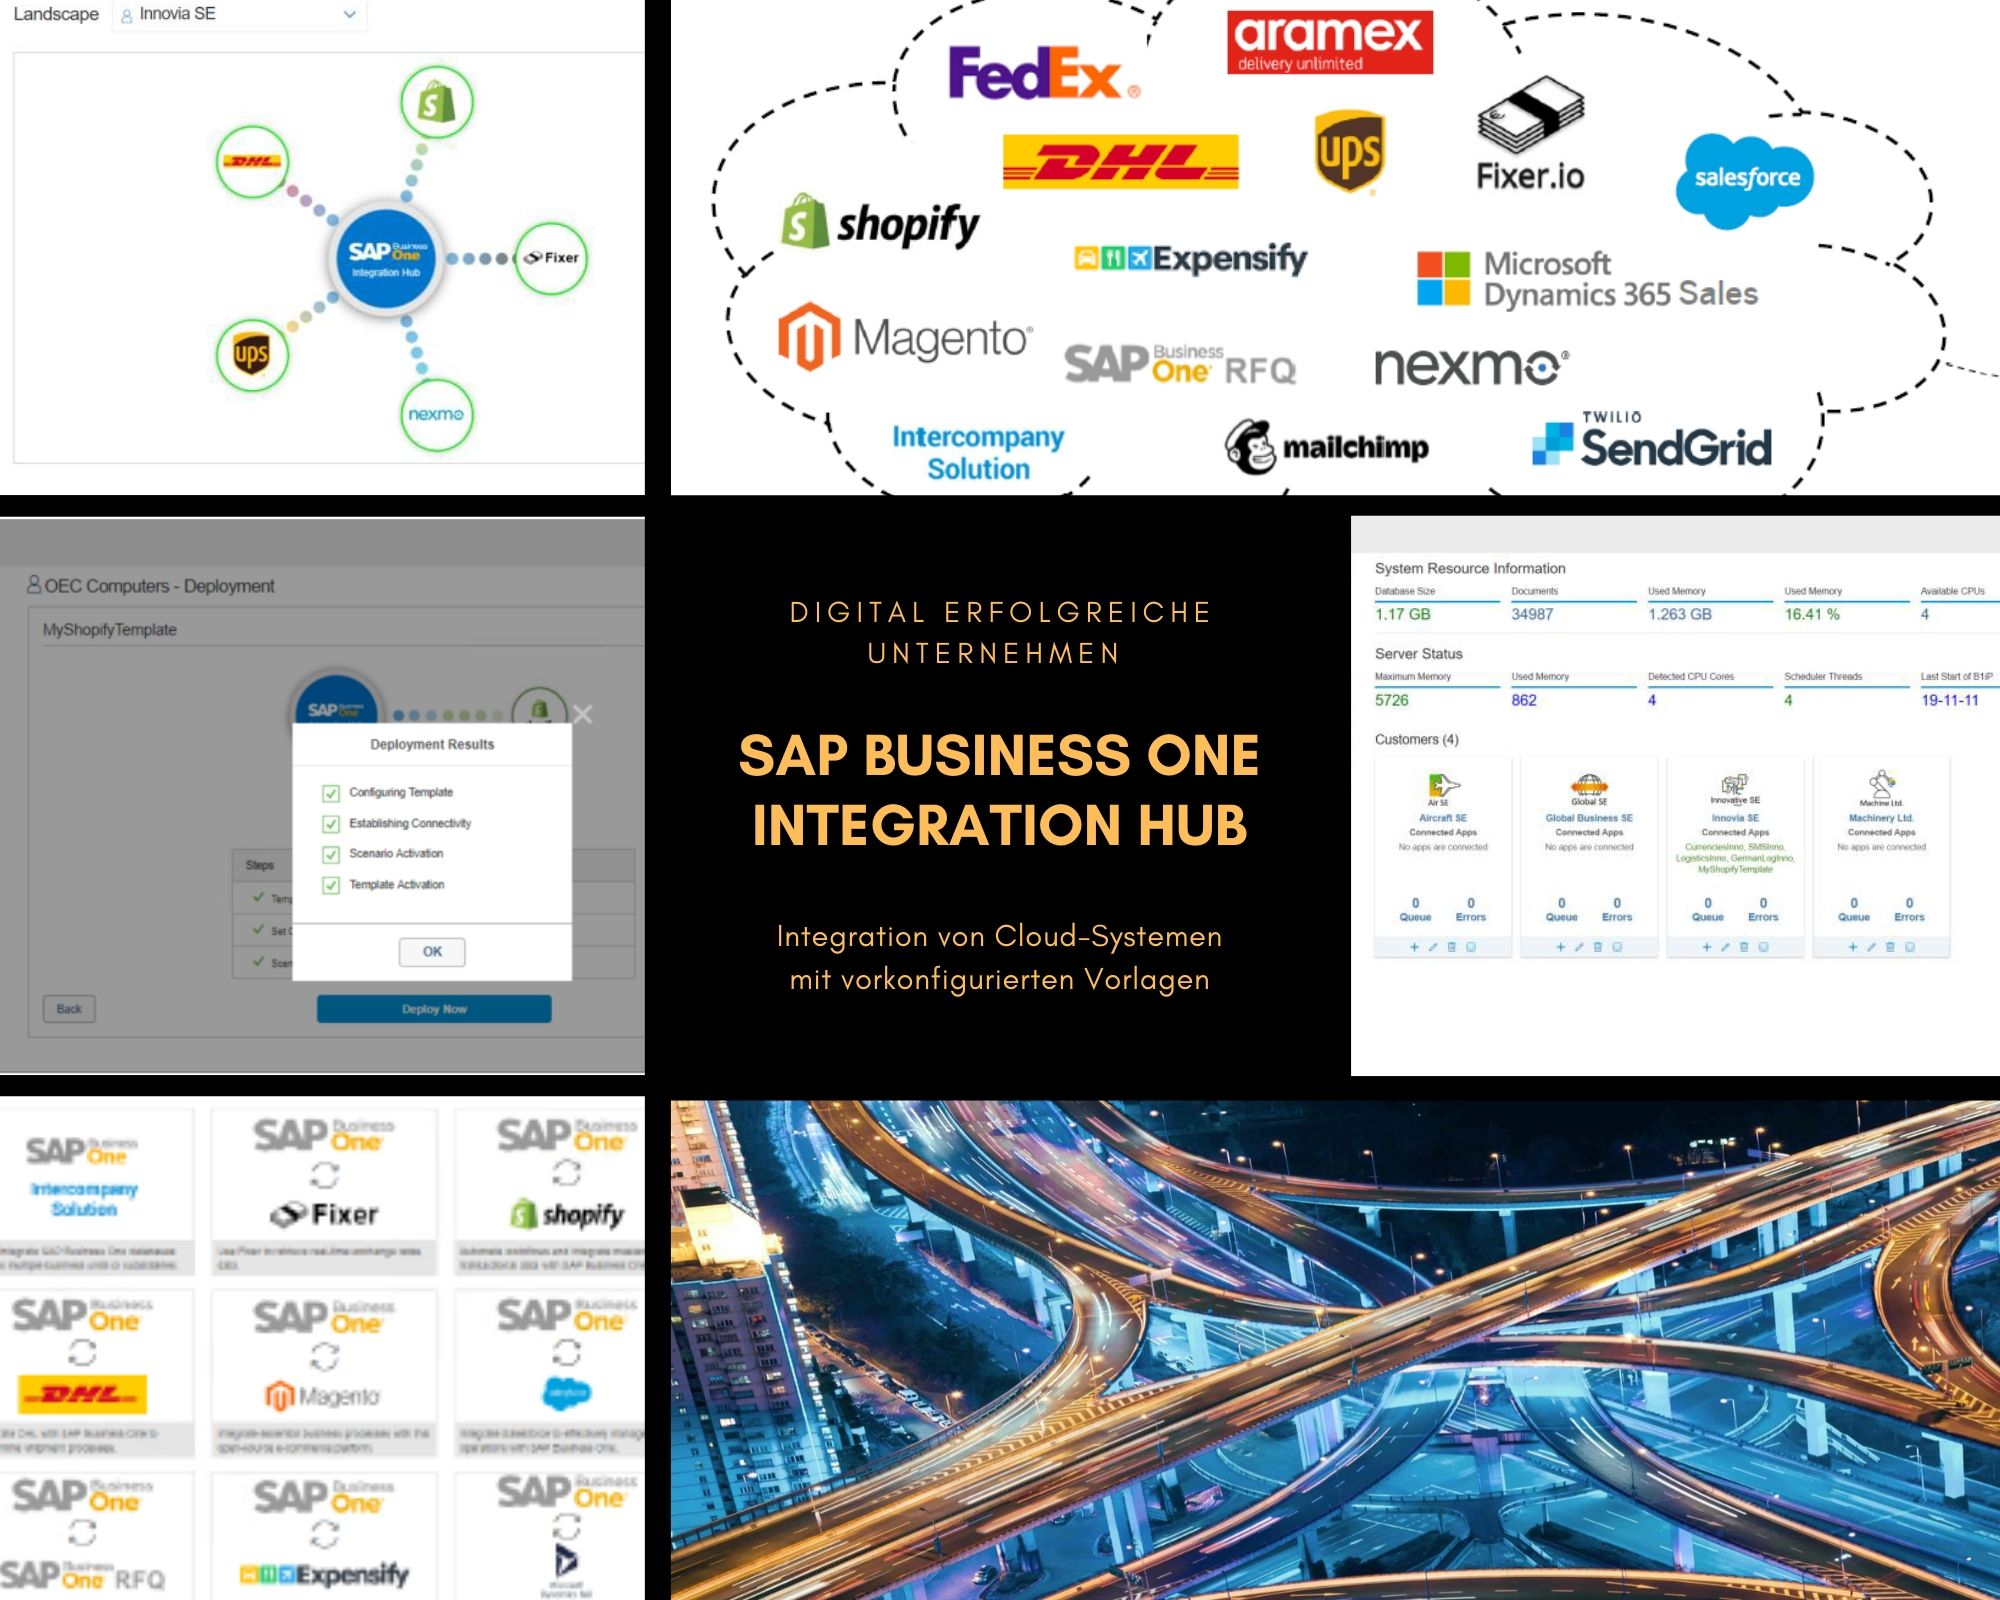 Integration Hub für SAP Business One